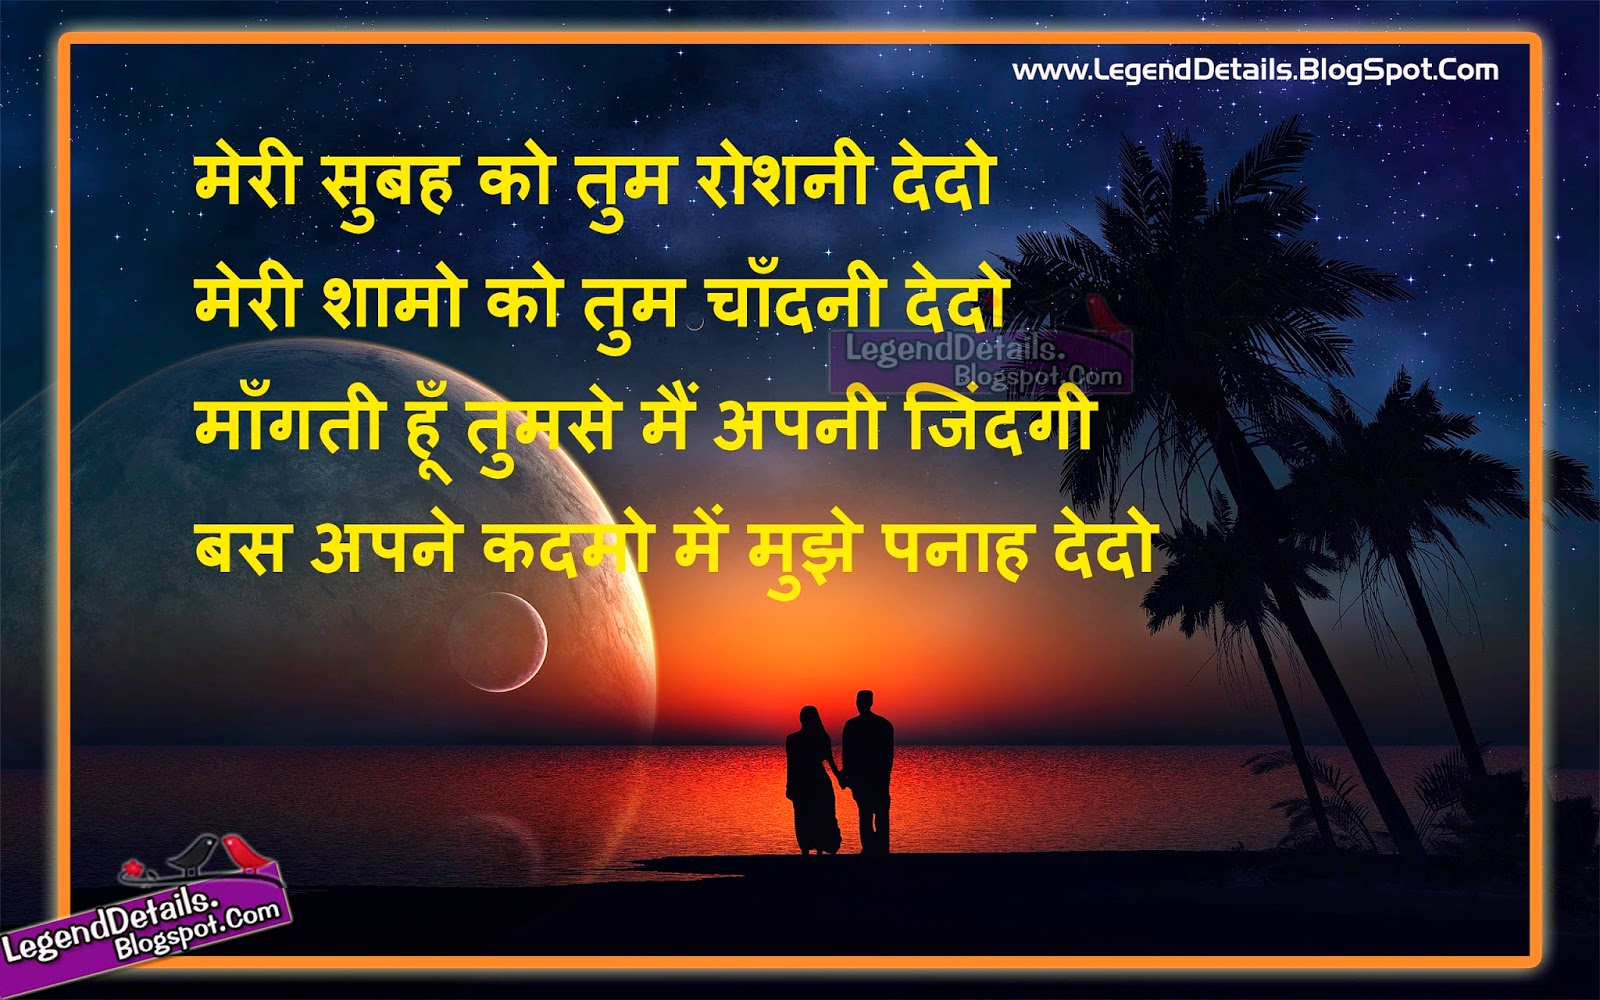 Love Quotes For Her In Hindi Shayari : touching love shayari for girlfriend in hindi font cute love shayari ...